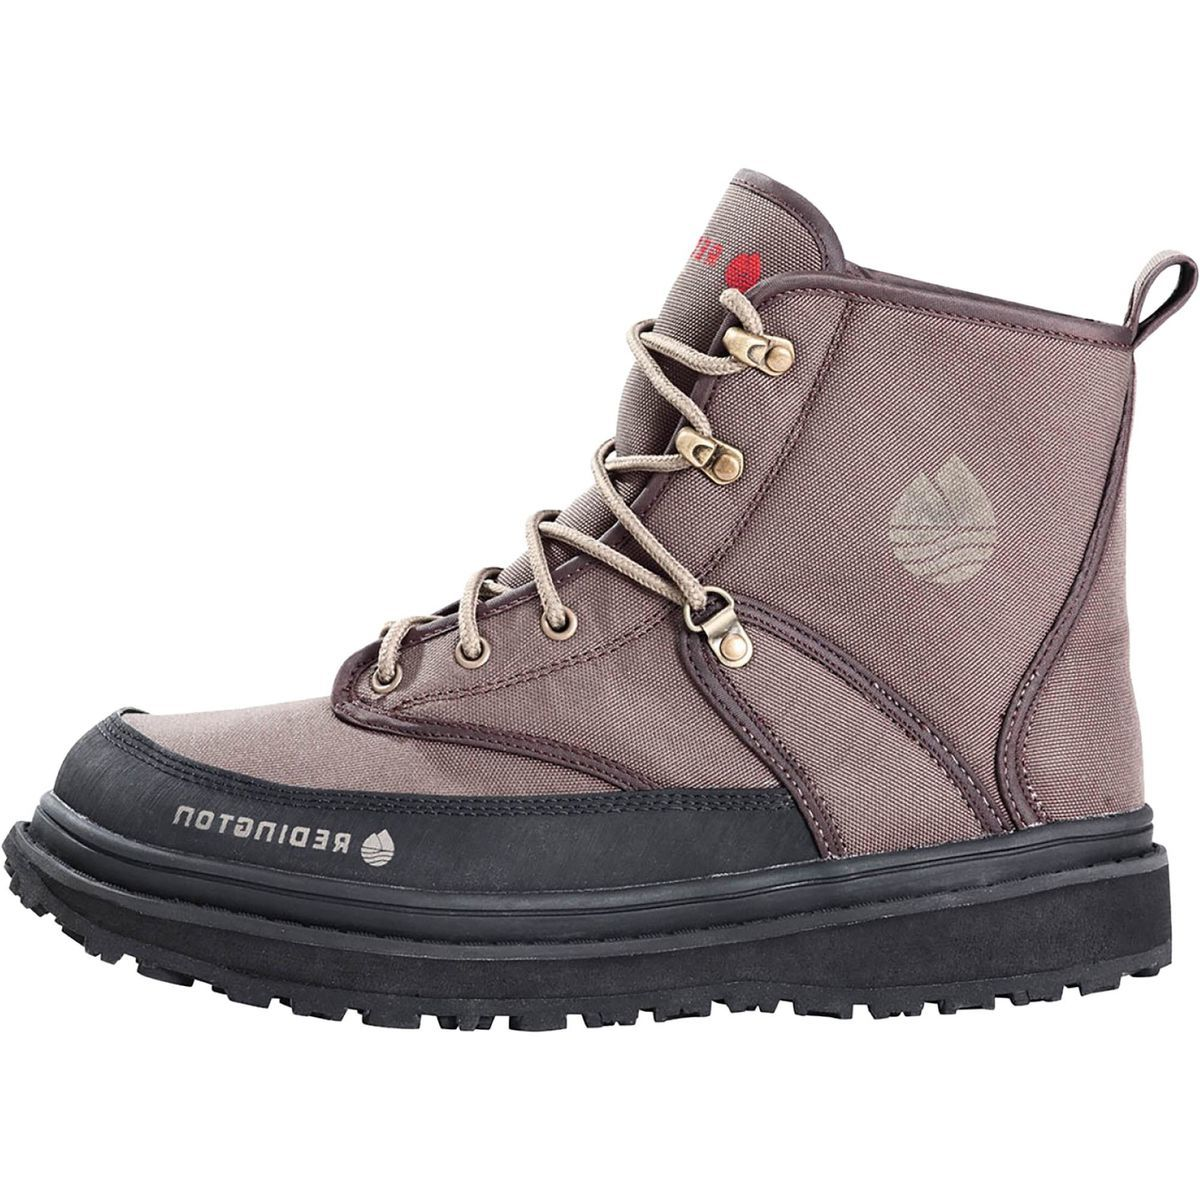 Redington Palix River Wading Boot - Sticky Rubber - Men's